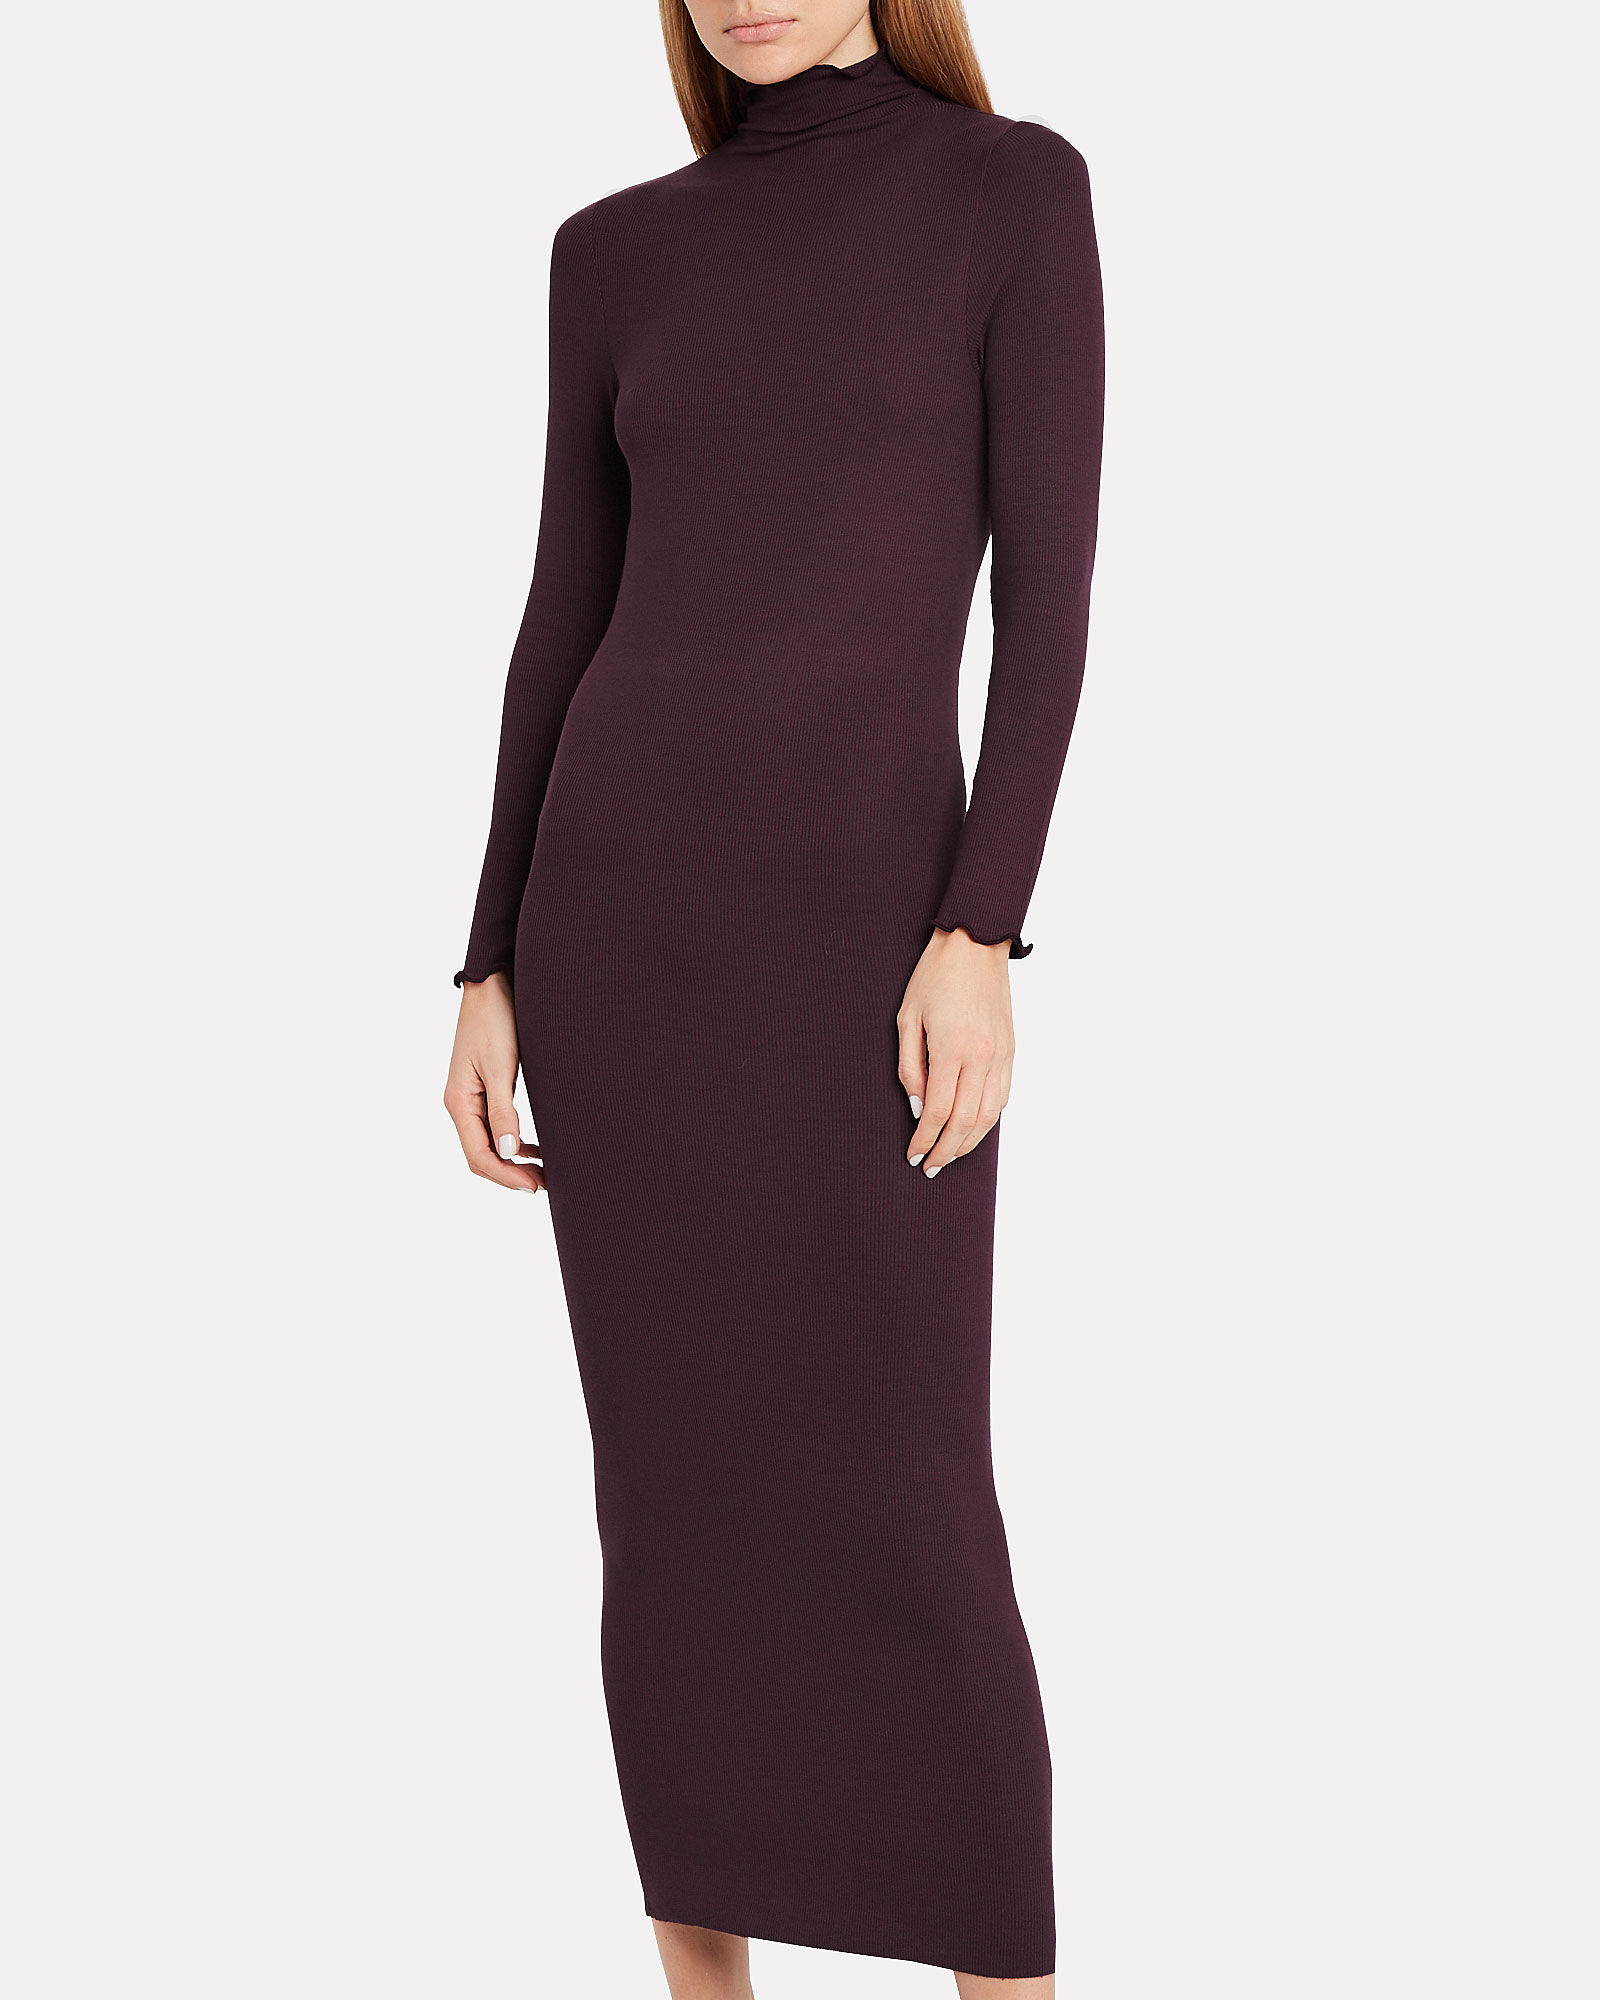 Ribbed Turtleneck Dress, BURGUNDY, hi-res